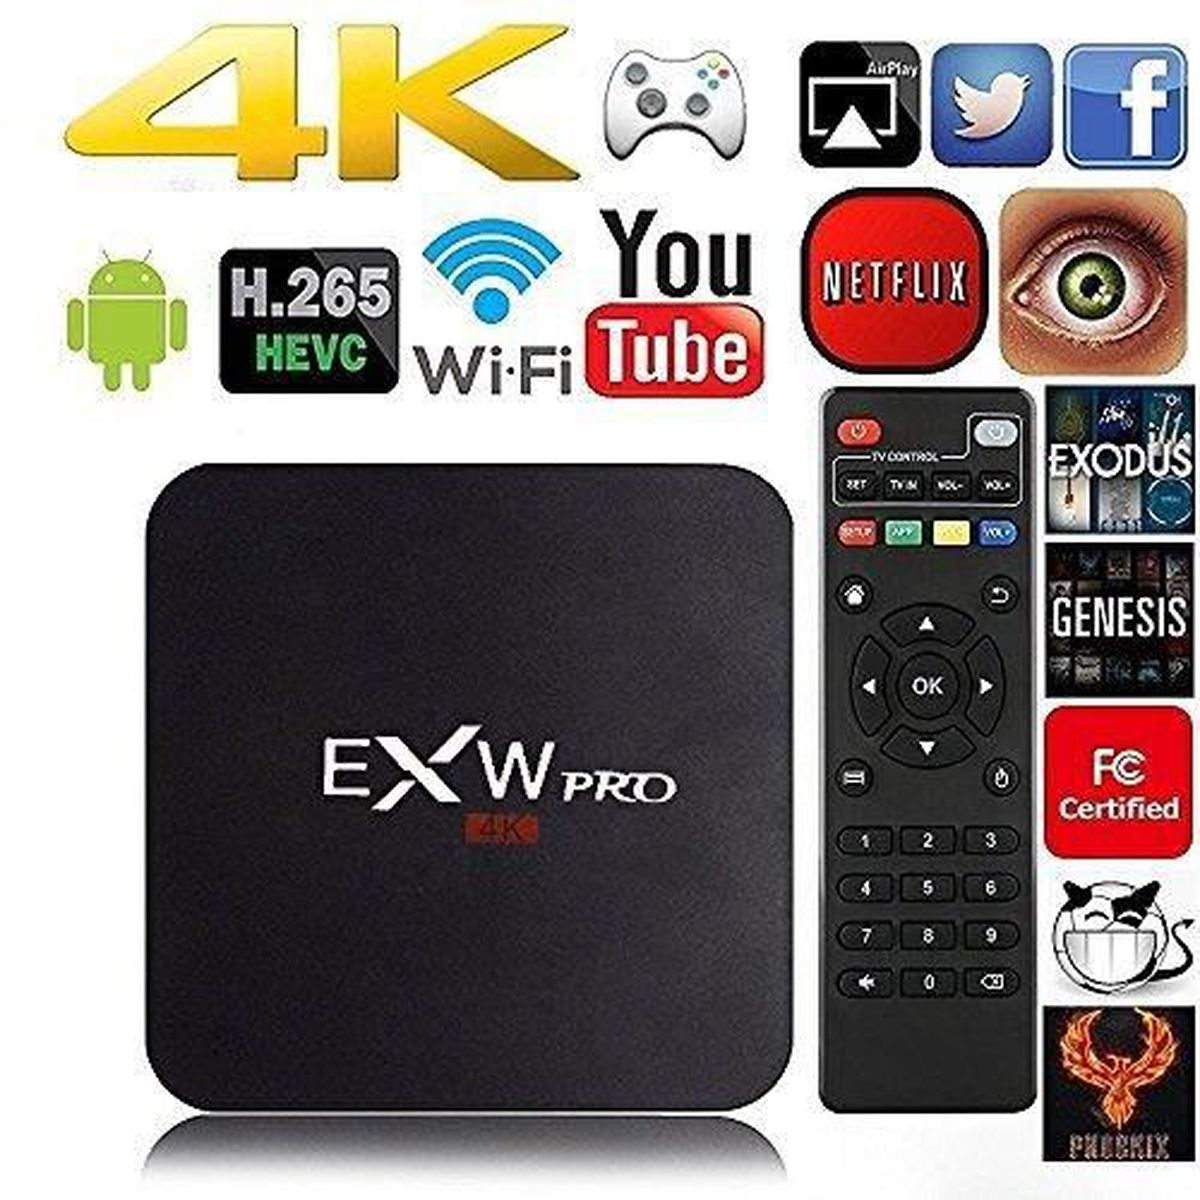 Mxq Pro Amlogic S905 Quad Core Uhd 4k 1go 8go Android 51 Wifi H Tv Box Multimedia An